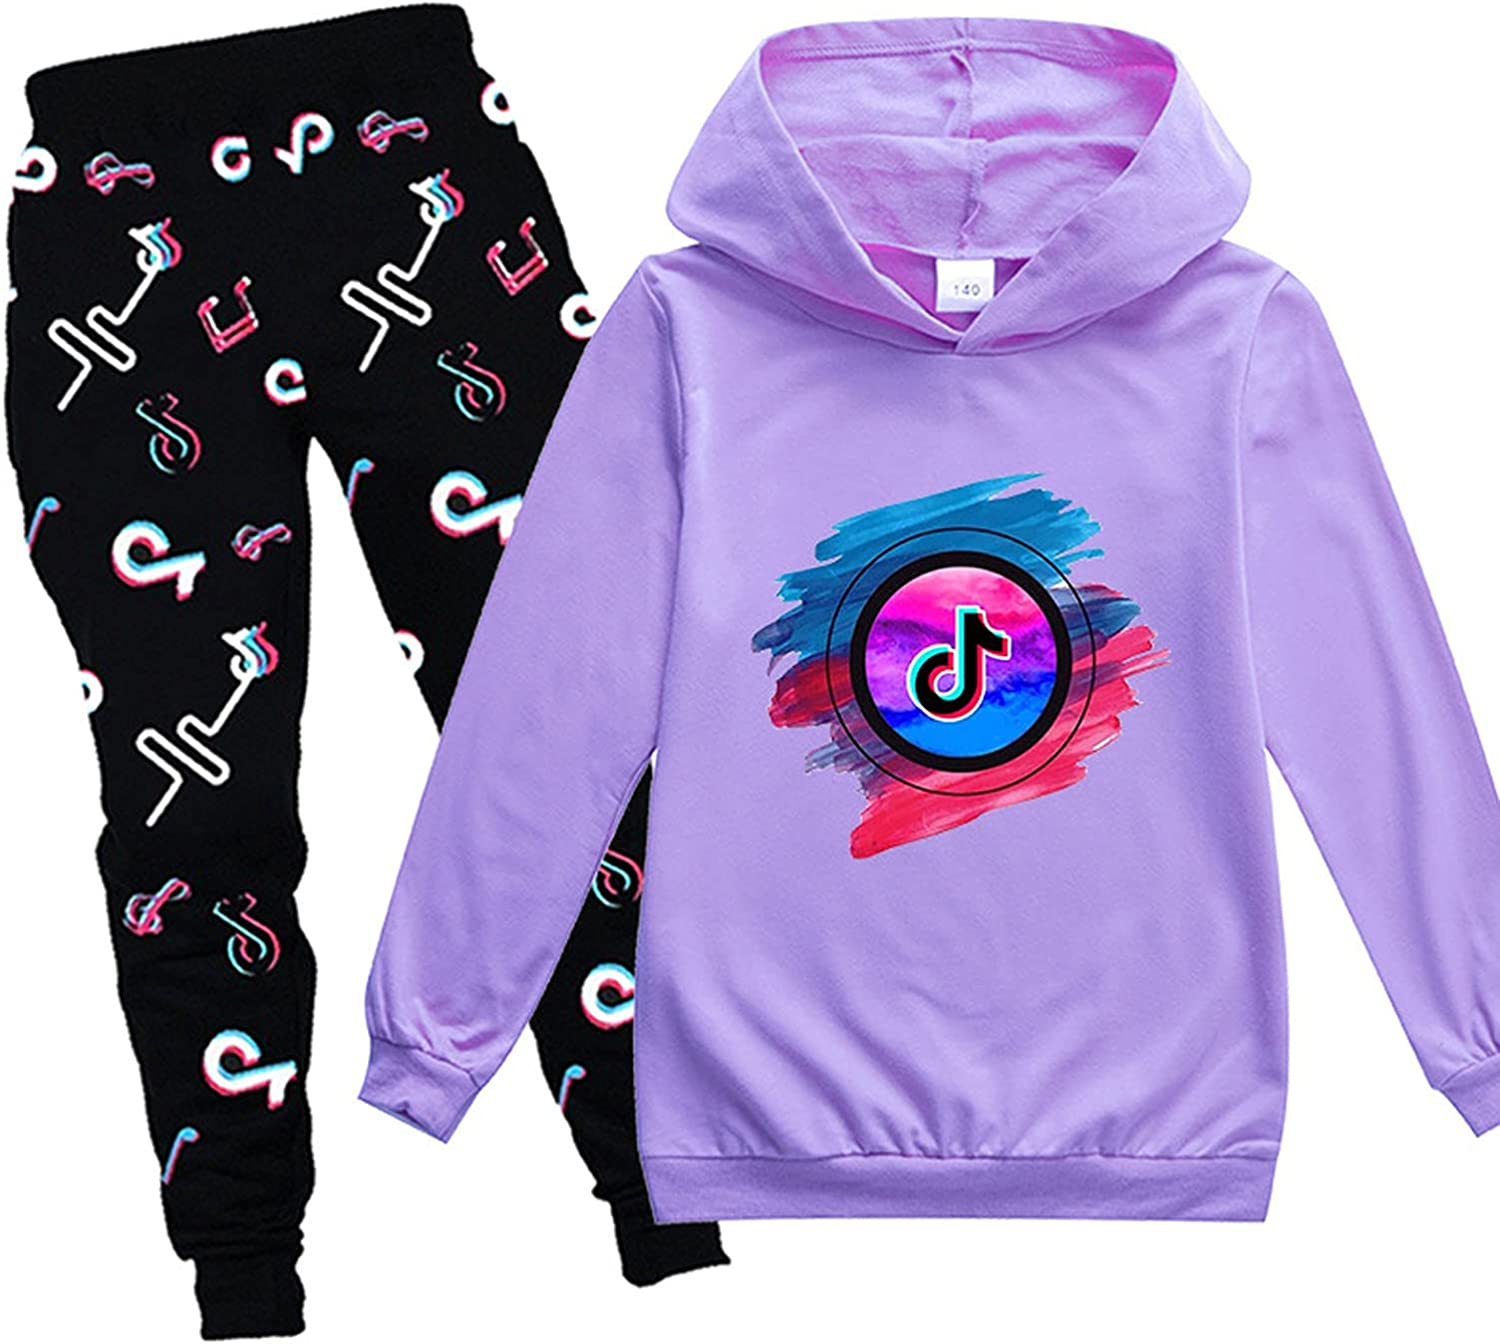 Two-Piece Jogging Sweatshirt Children's Hoodie Set Boys And Girls Pullover And Sweatpants Suit